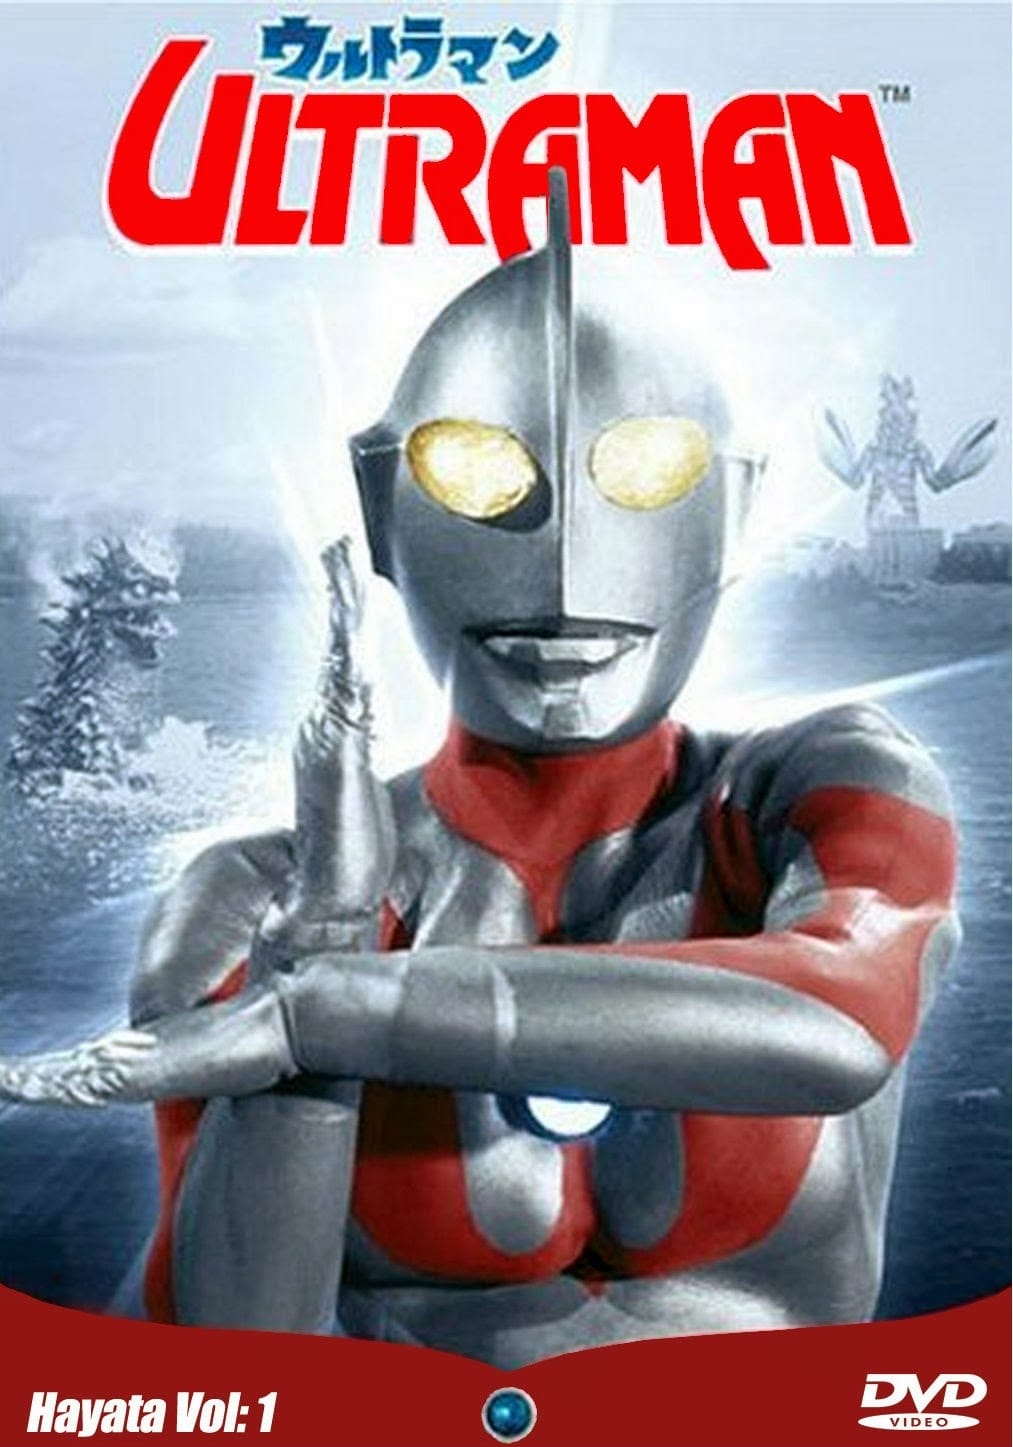 Ultraman: Monster Movie Feature (1967) - Posters — The ...